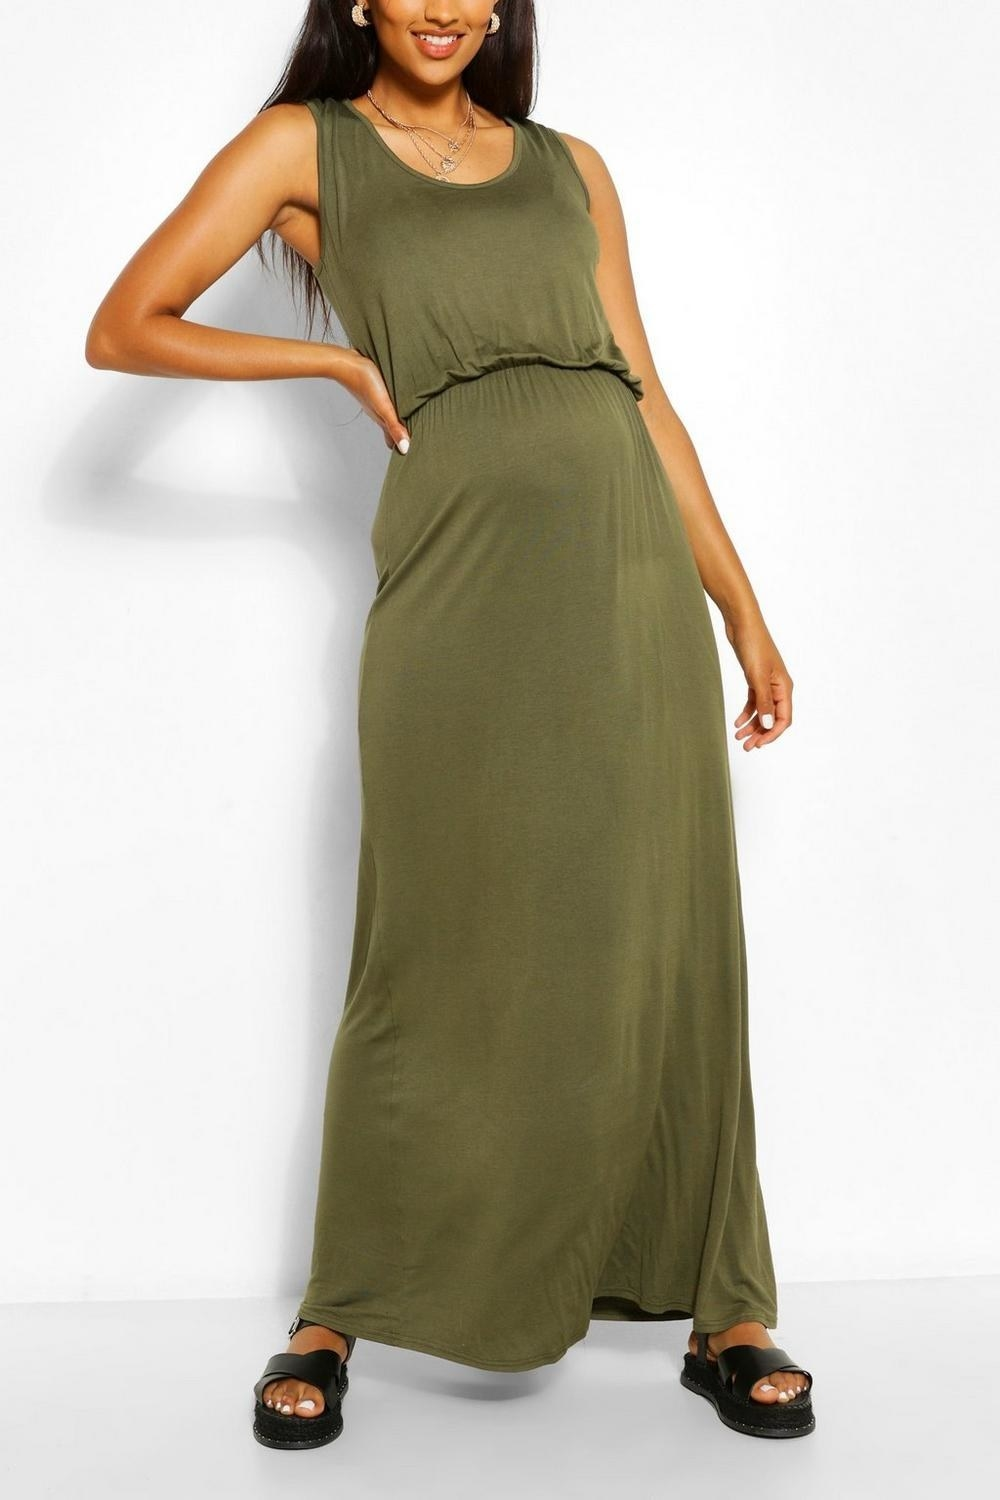 olive green ankle length strapless dress with scoop neck and shirred waist